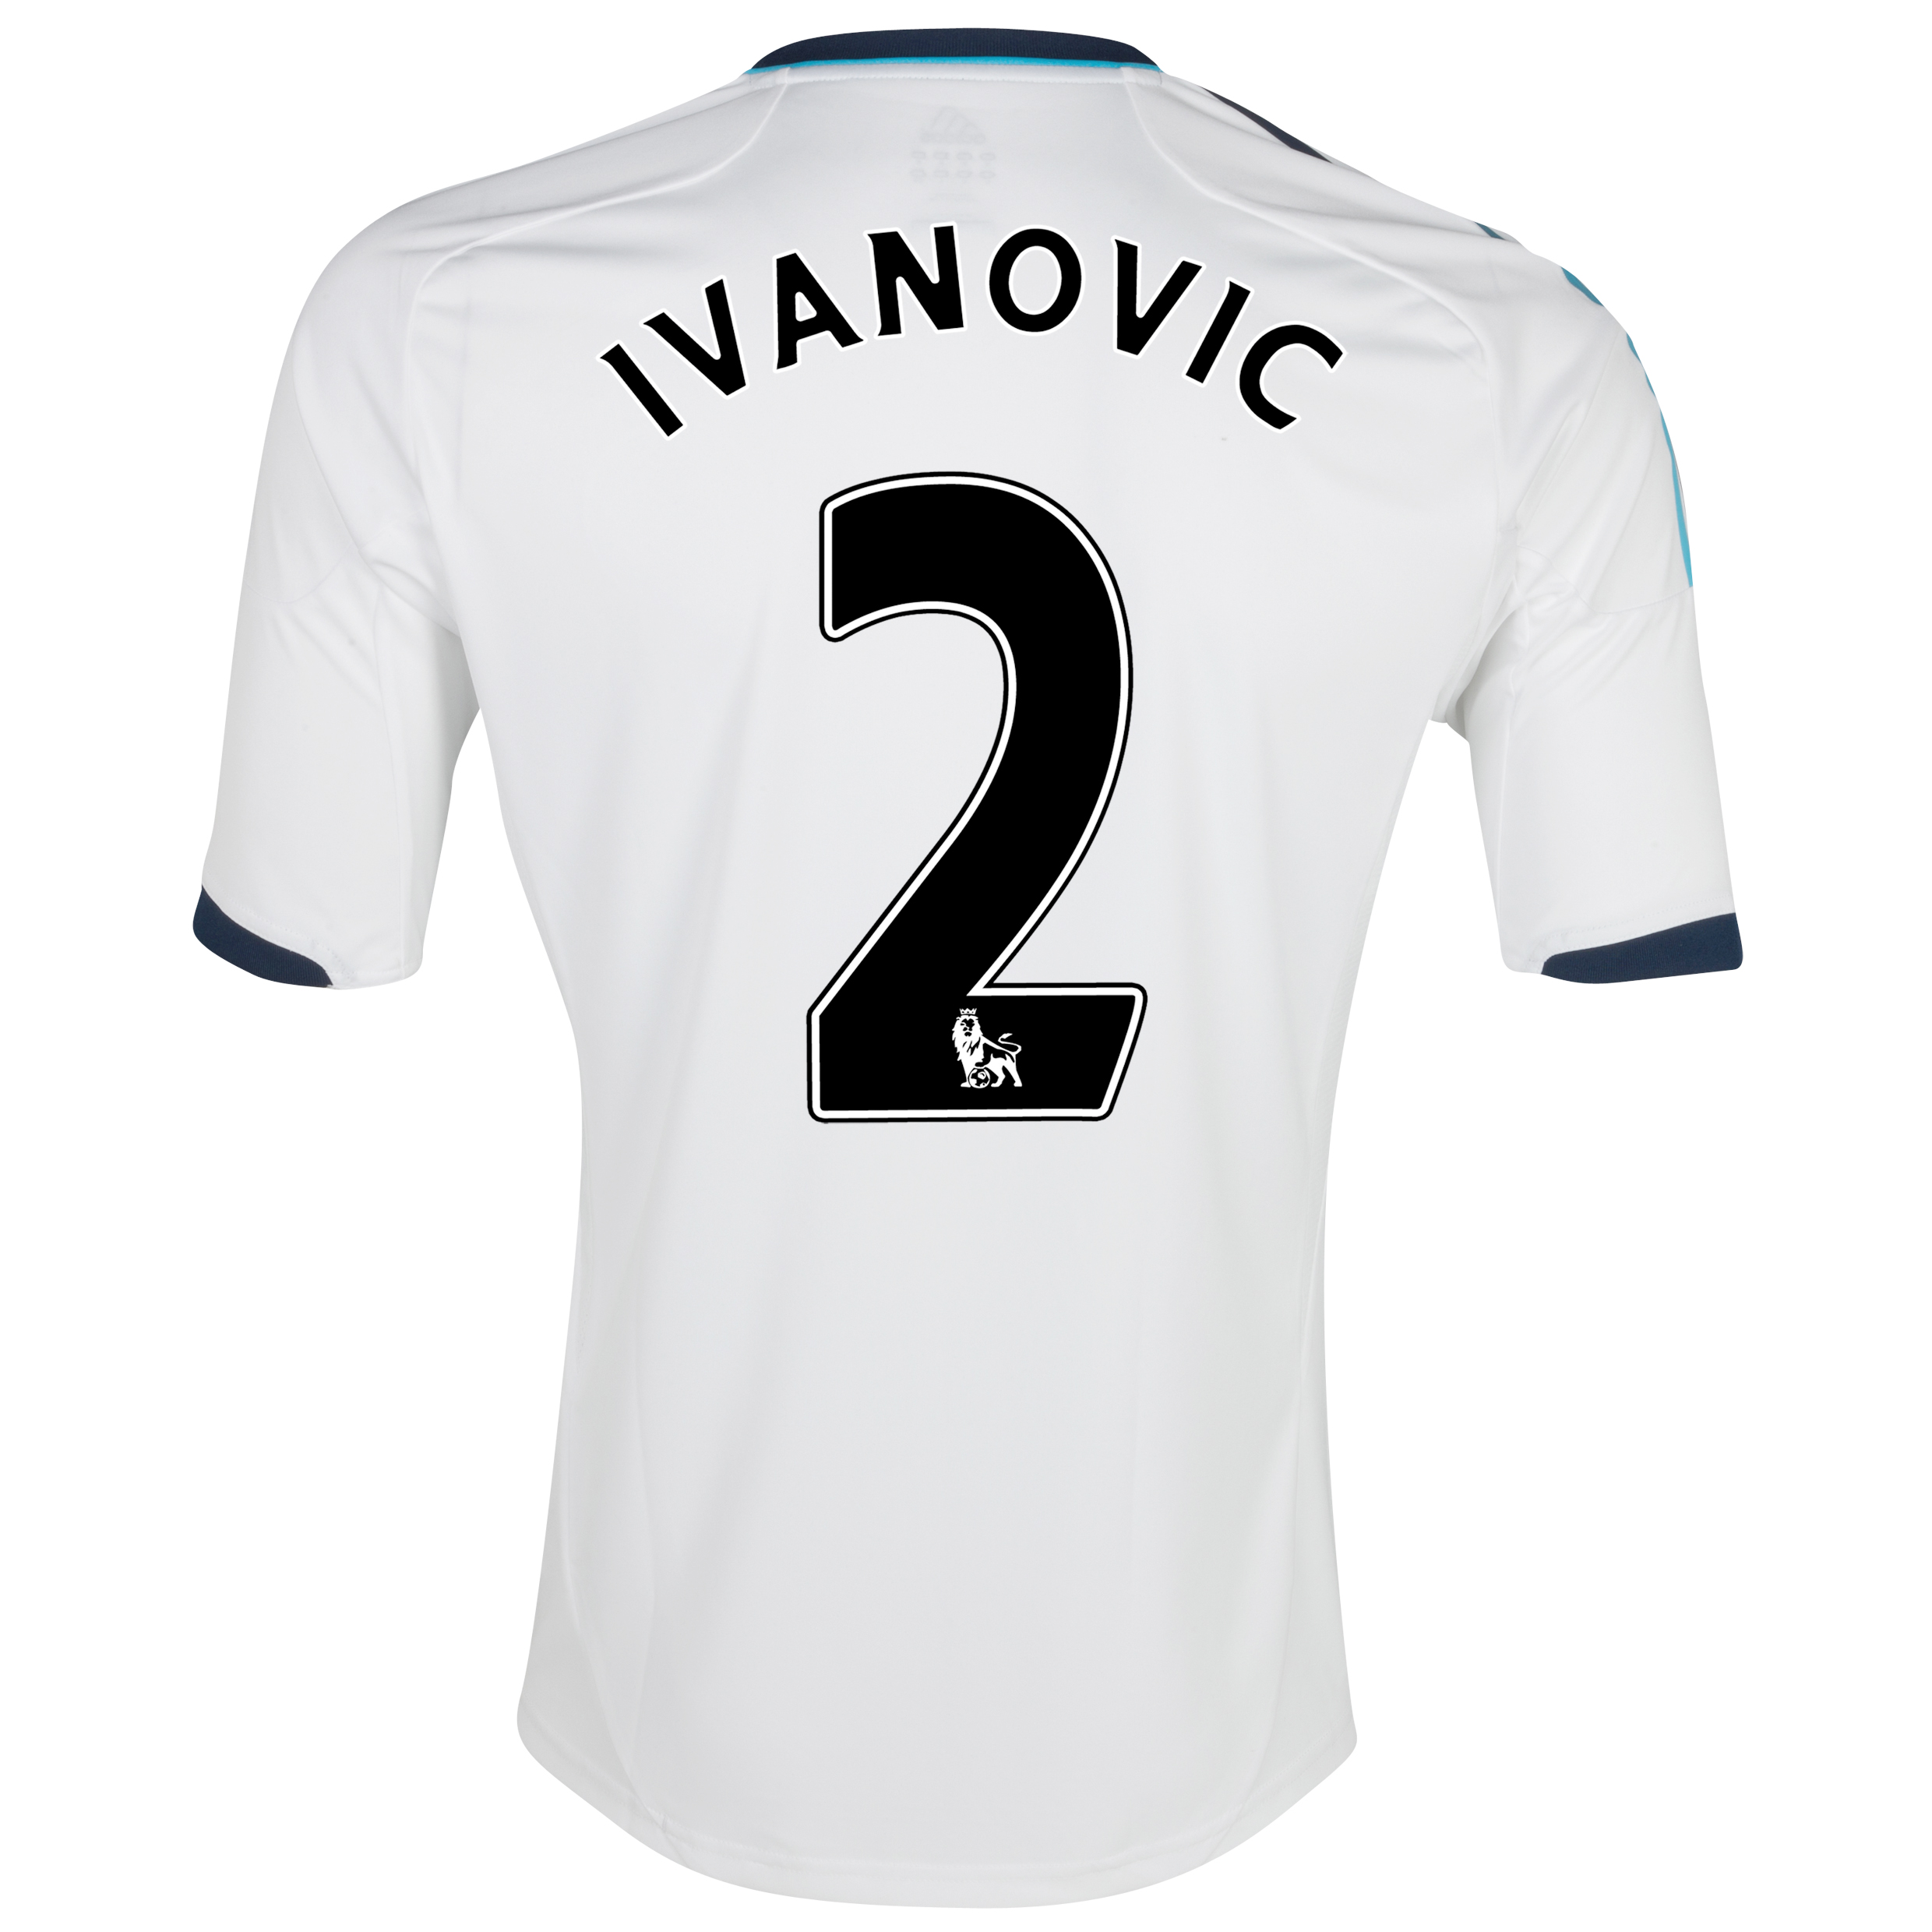 Chelsea Away Shirt 2012/13 with Ivanovic 2 printing